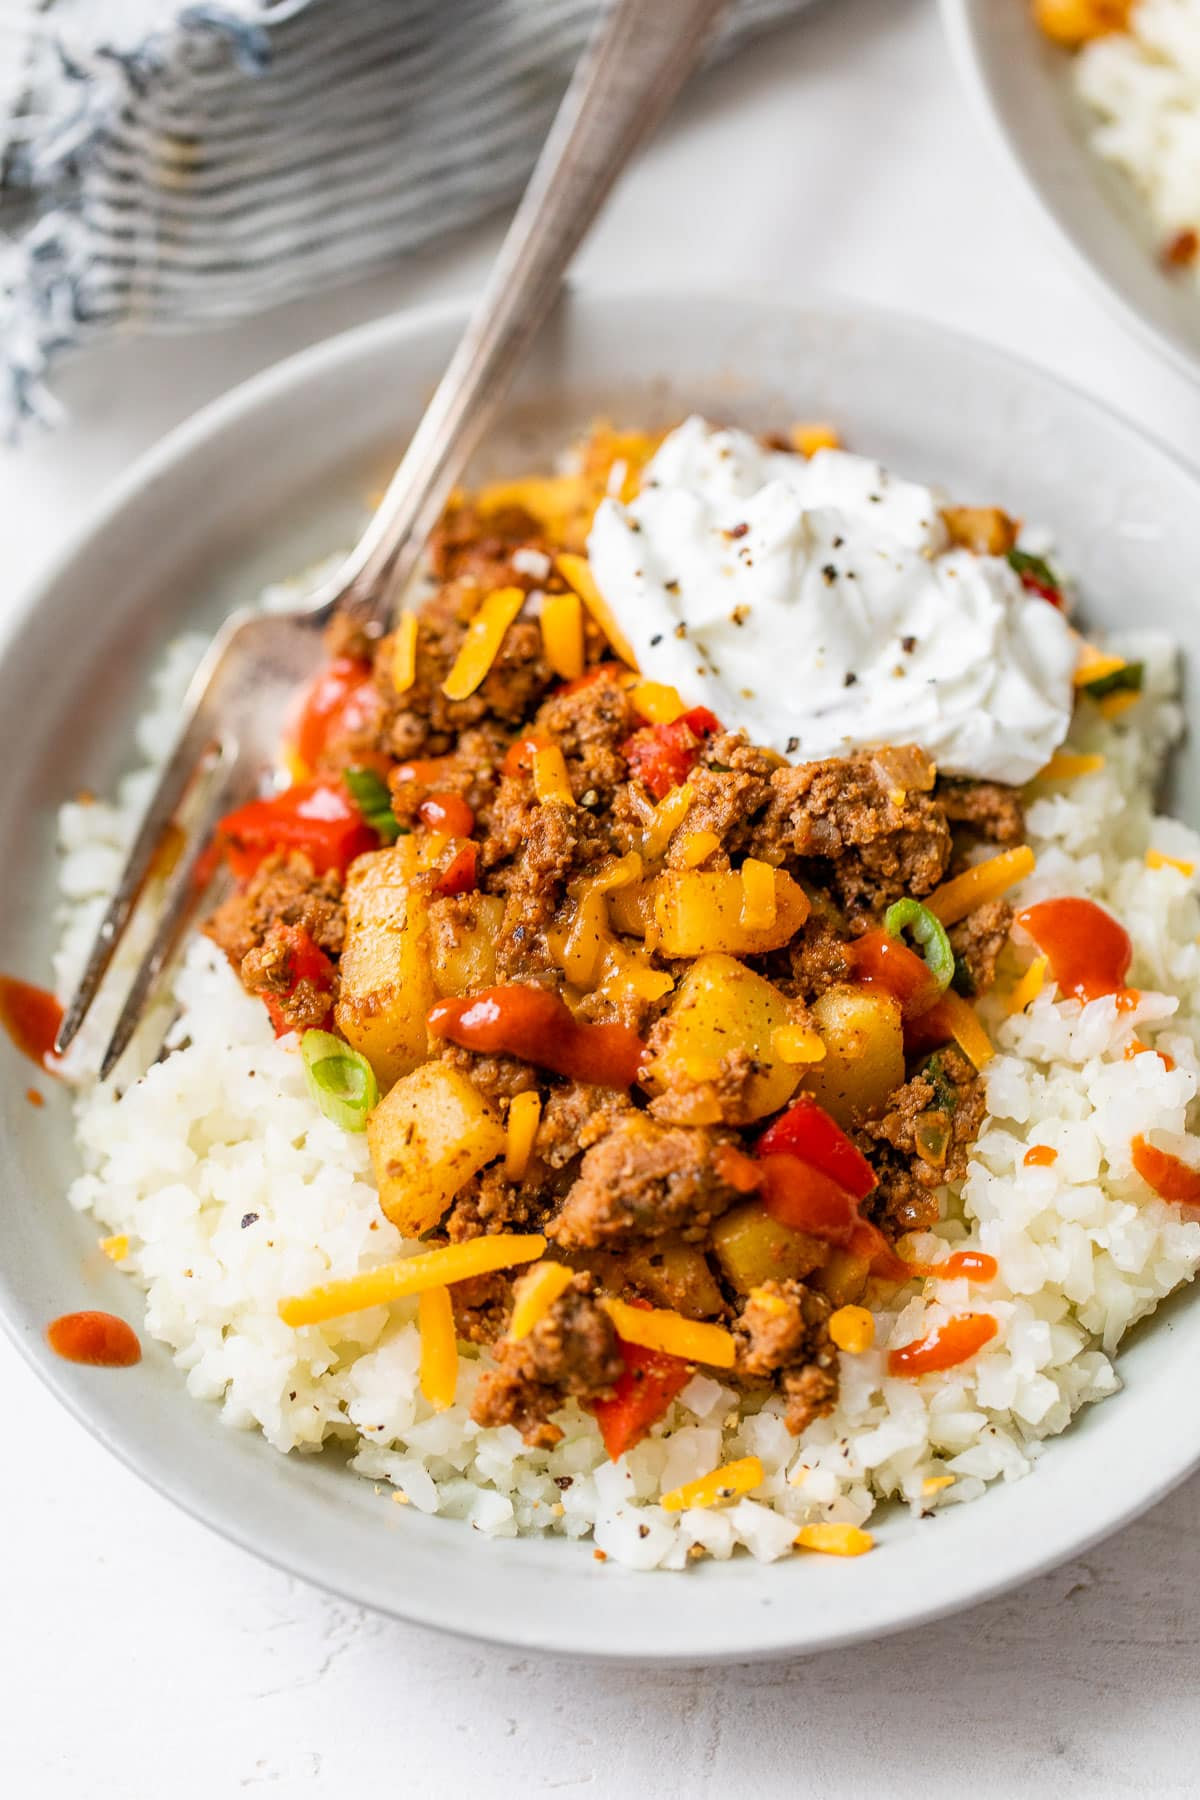 Healthy ground beef and potatoes with rice